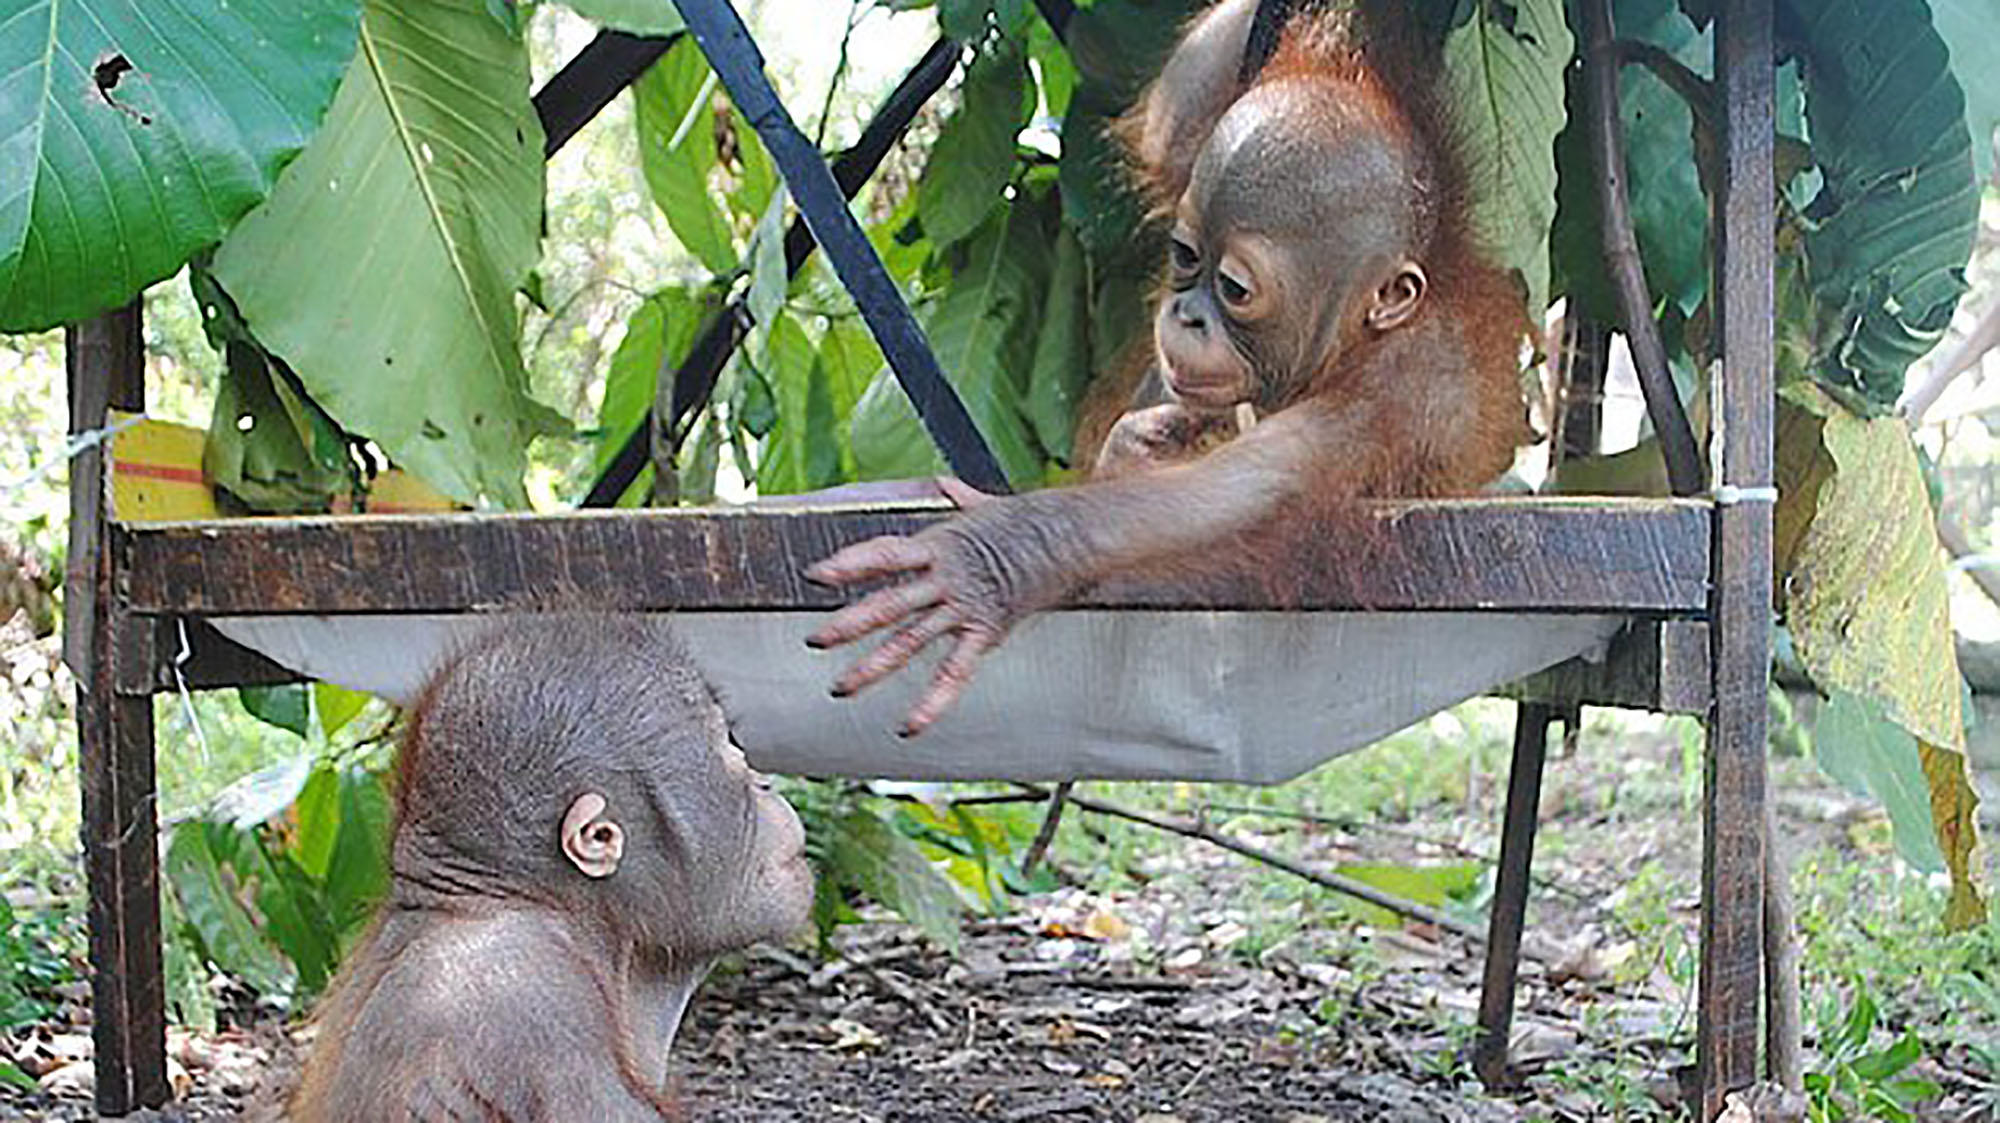 The adorable moment two baby orangutans meet after being rescued